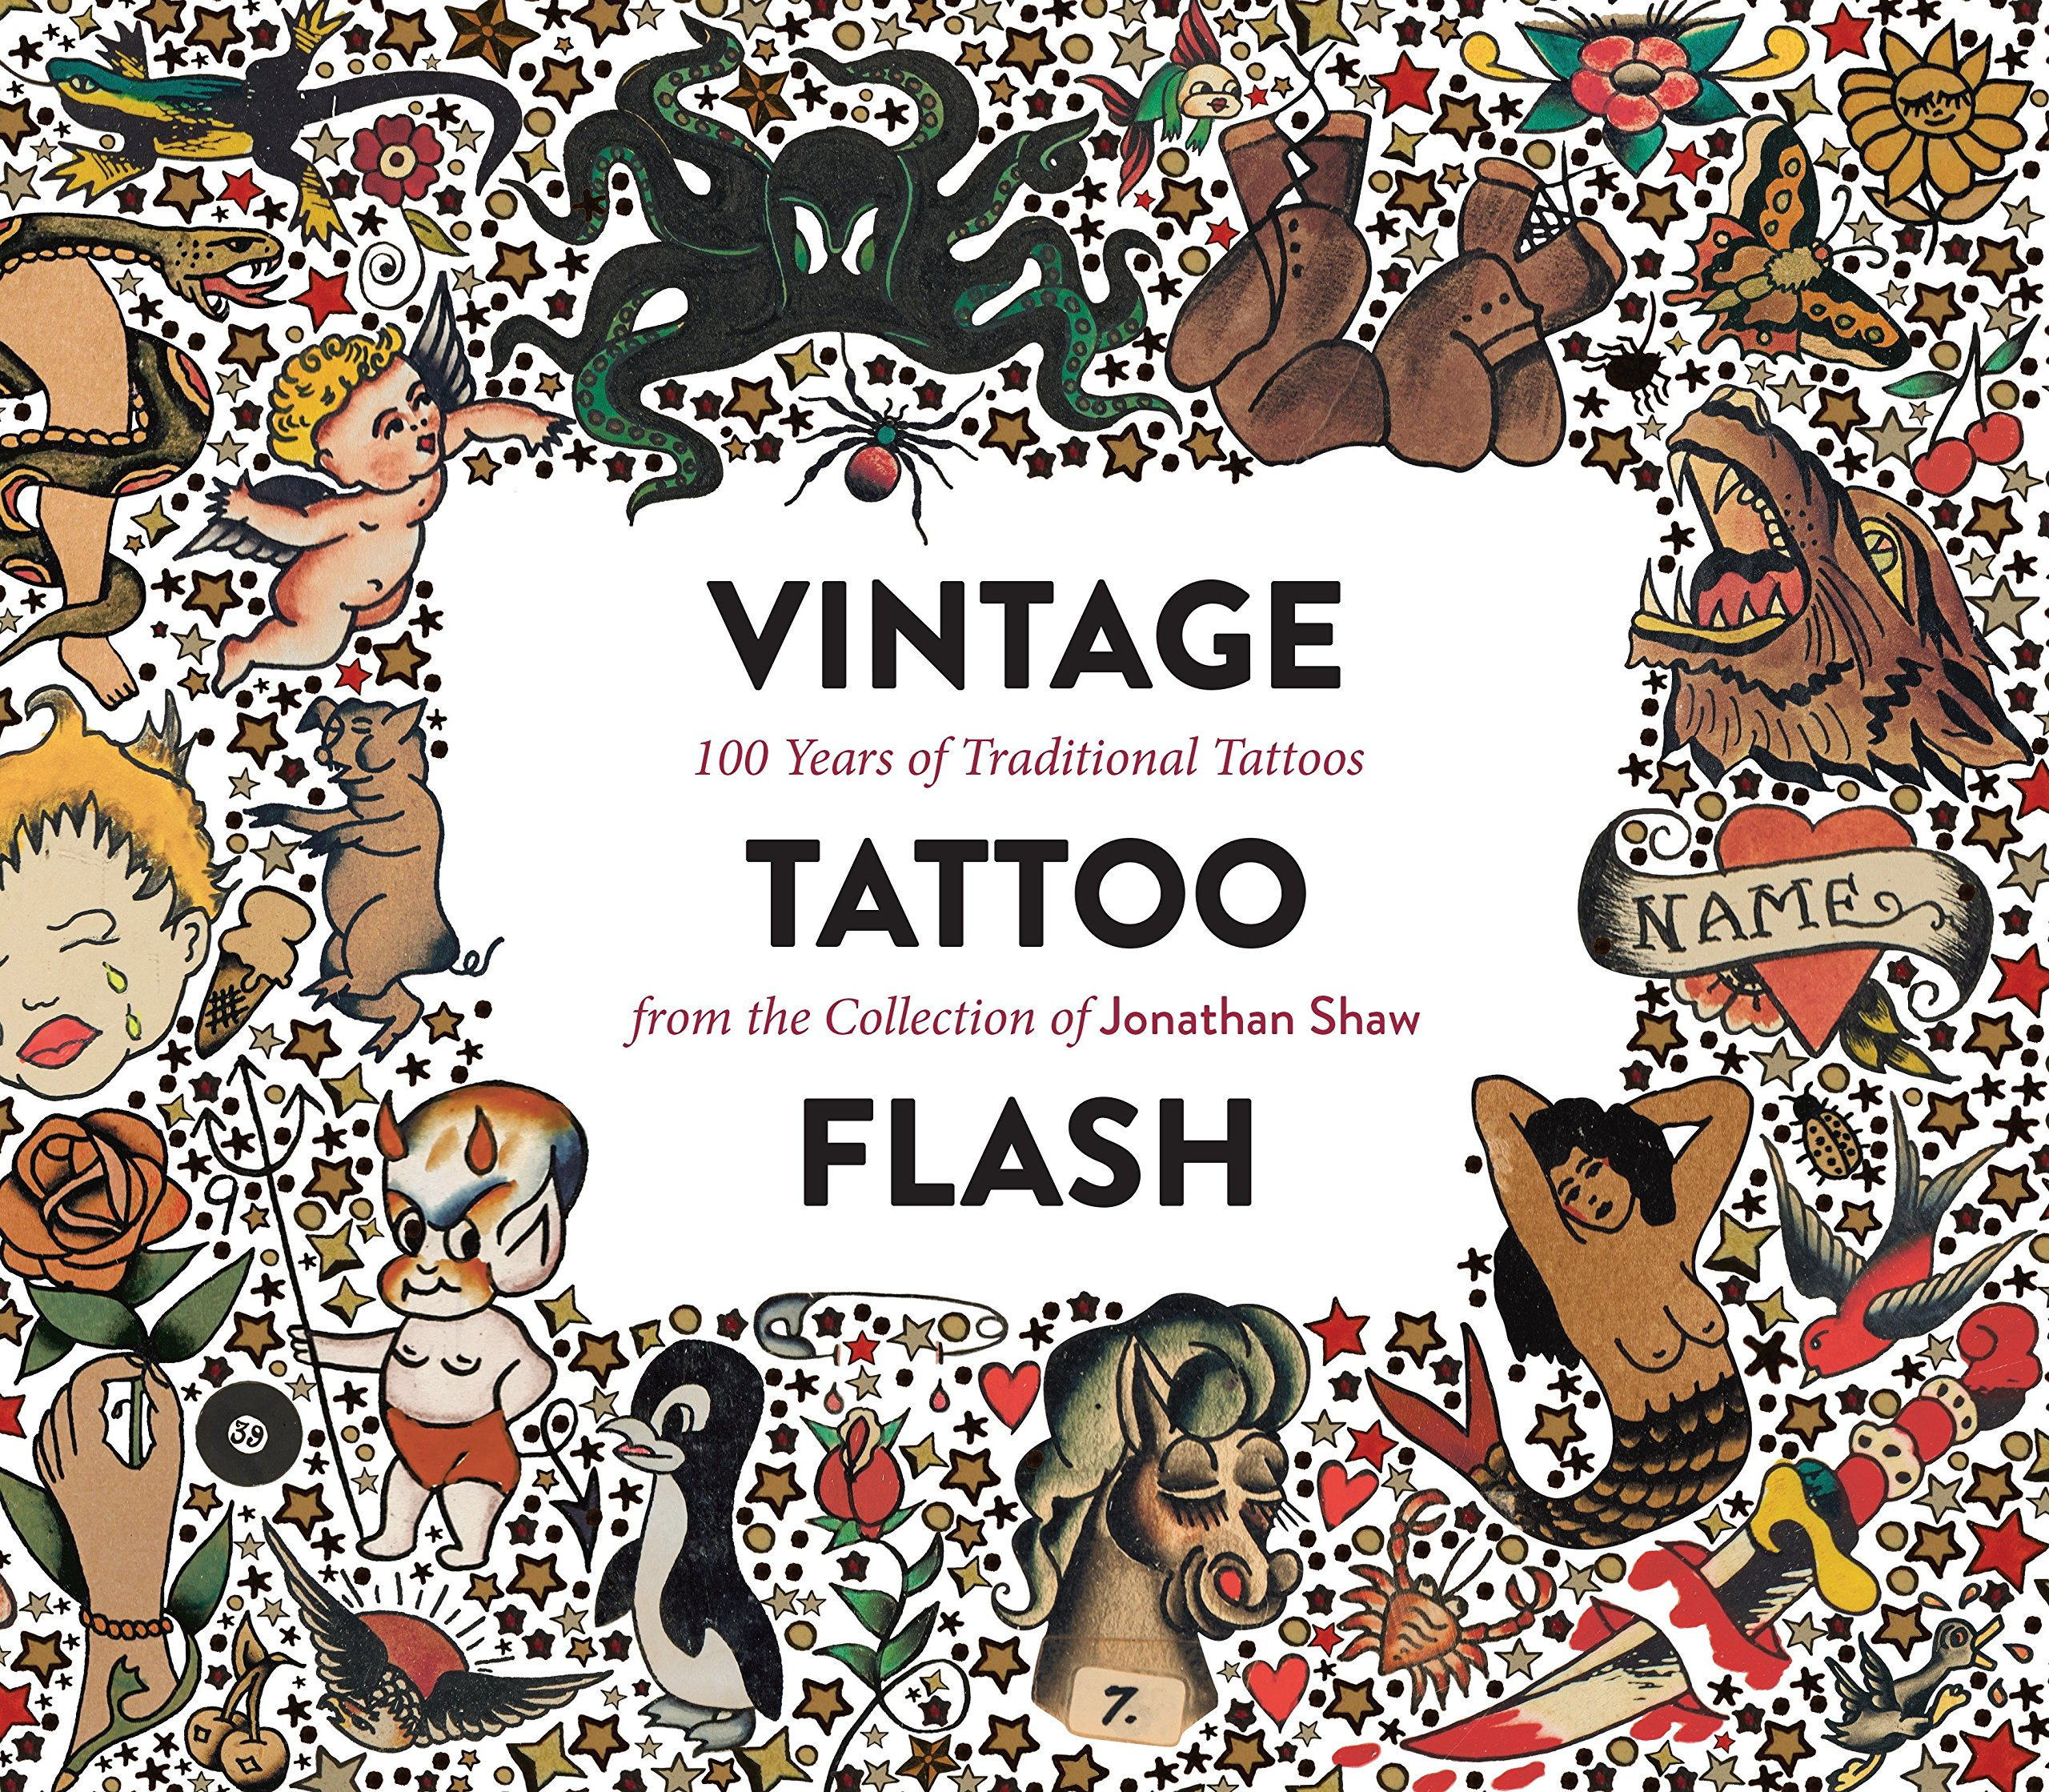 Vintage Tattoo Flash: 100 Years of Traditional Tattoos from the Collection of Jonathan Shaw by POWERHOUSE